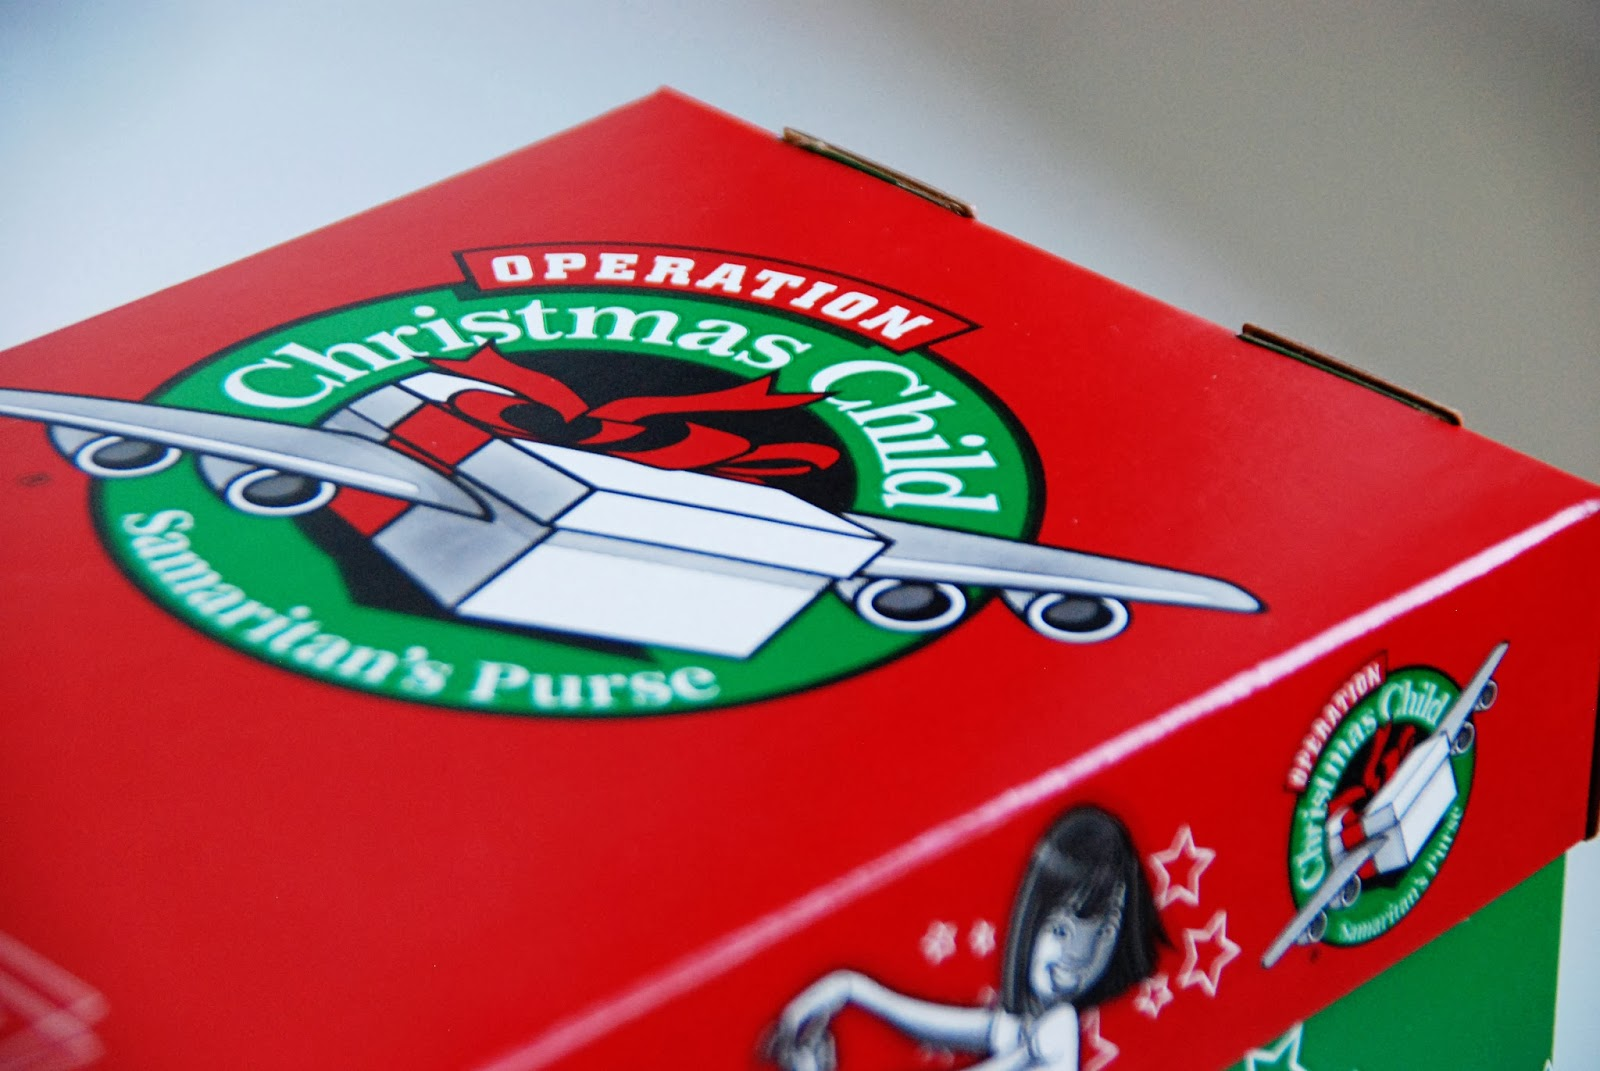 Operation Christmas Child Shoebox.Simple Girl My Very Own Shoebox Packing Tips Operation